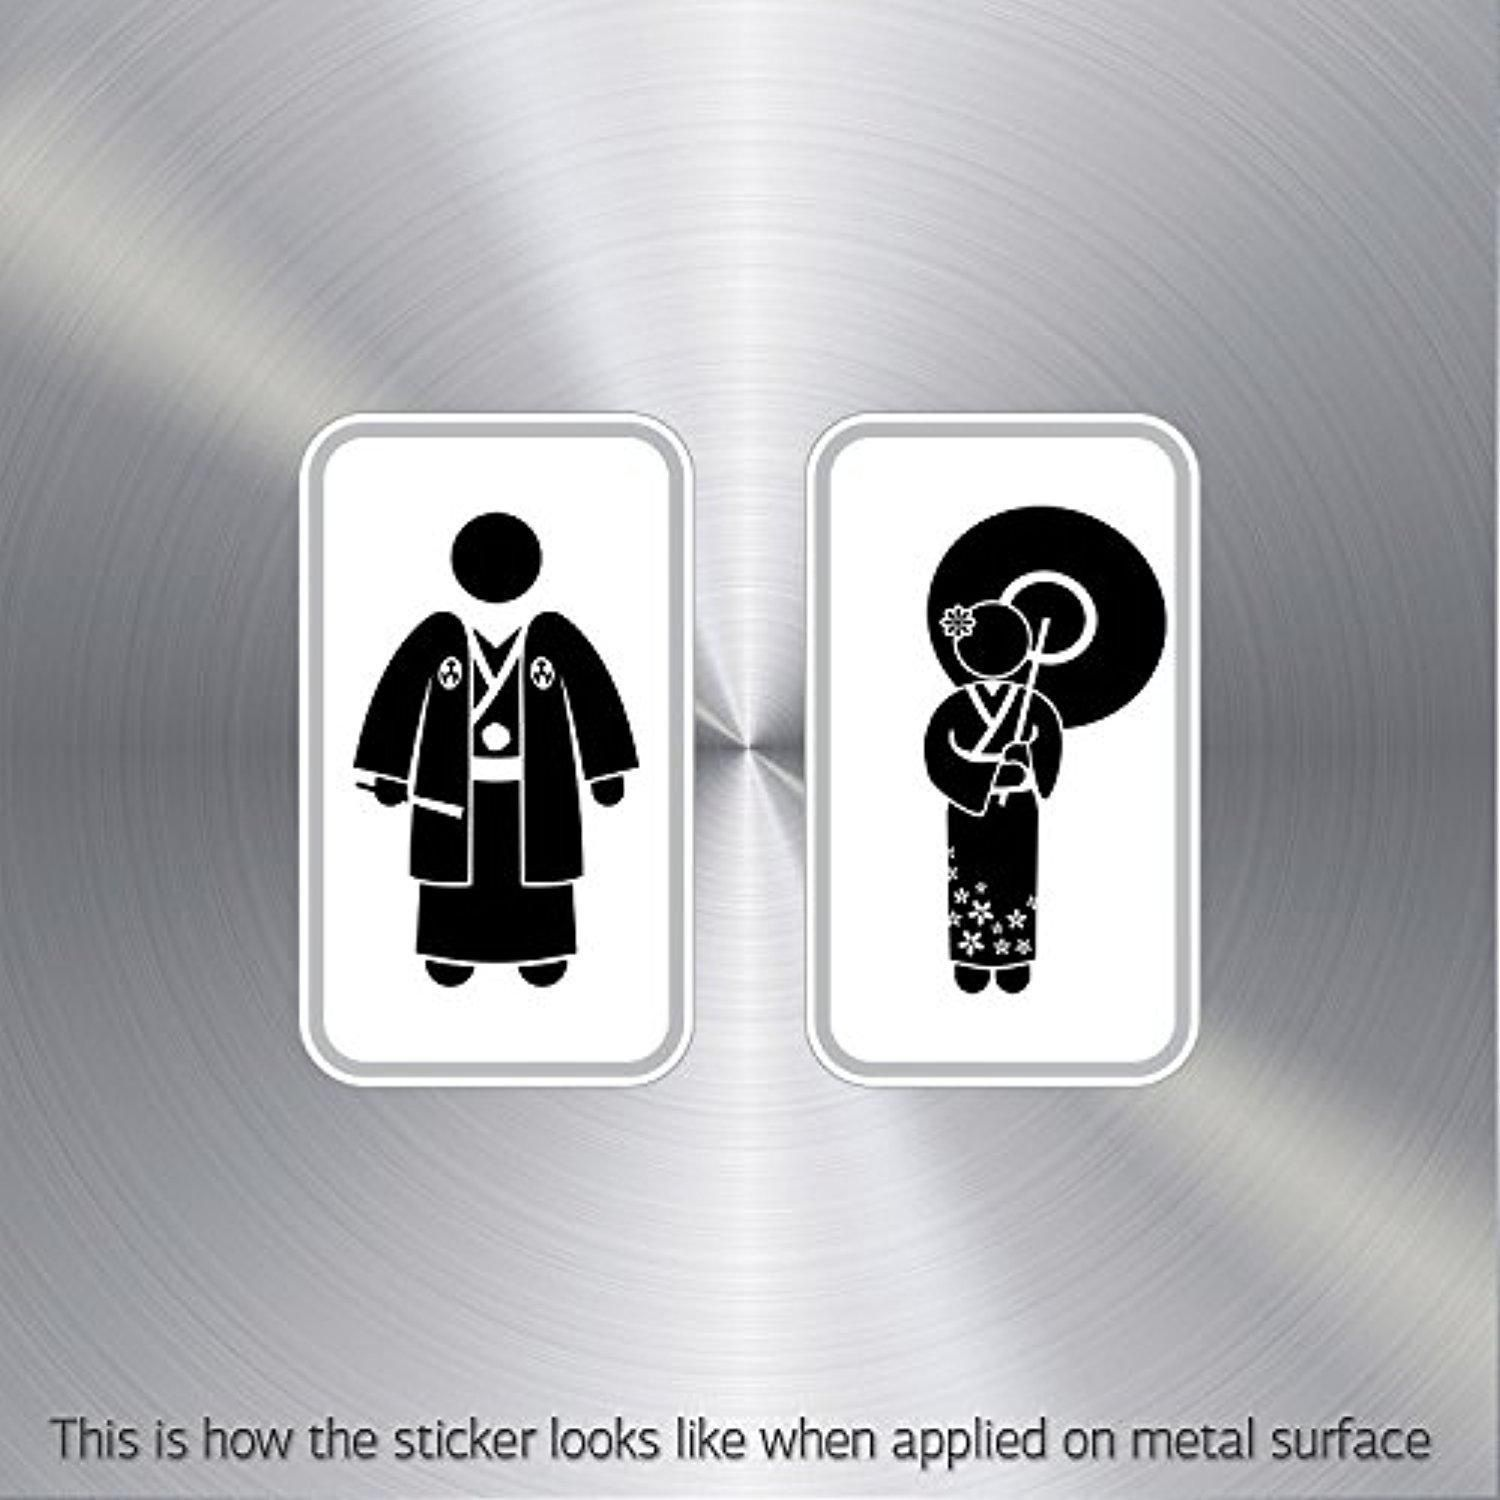 Decal sticker wc restrooms sign japan man woman toilet bathroom lavatory waterproof game brought to you by avarsha com